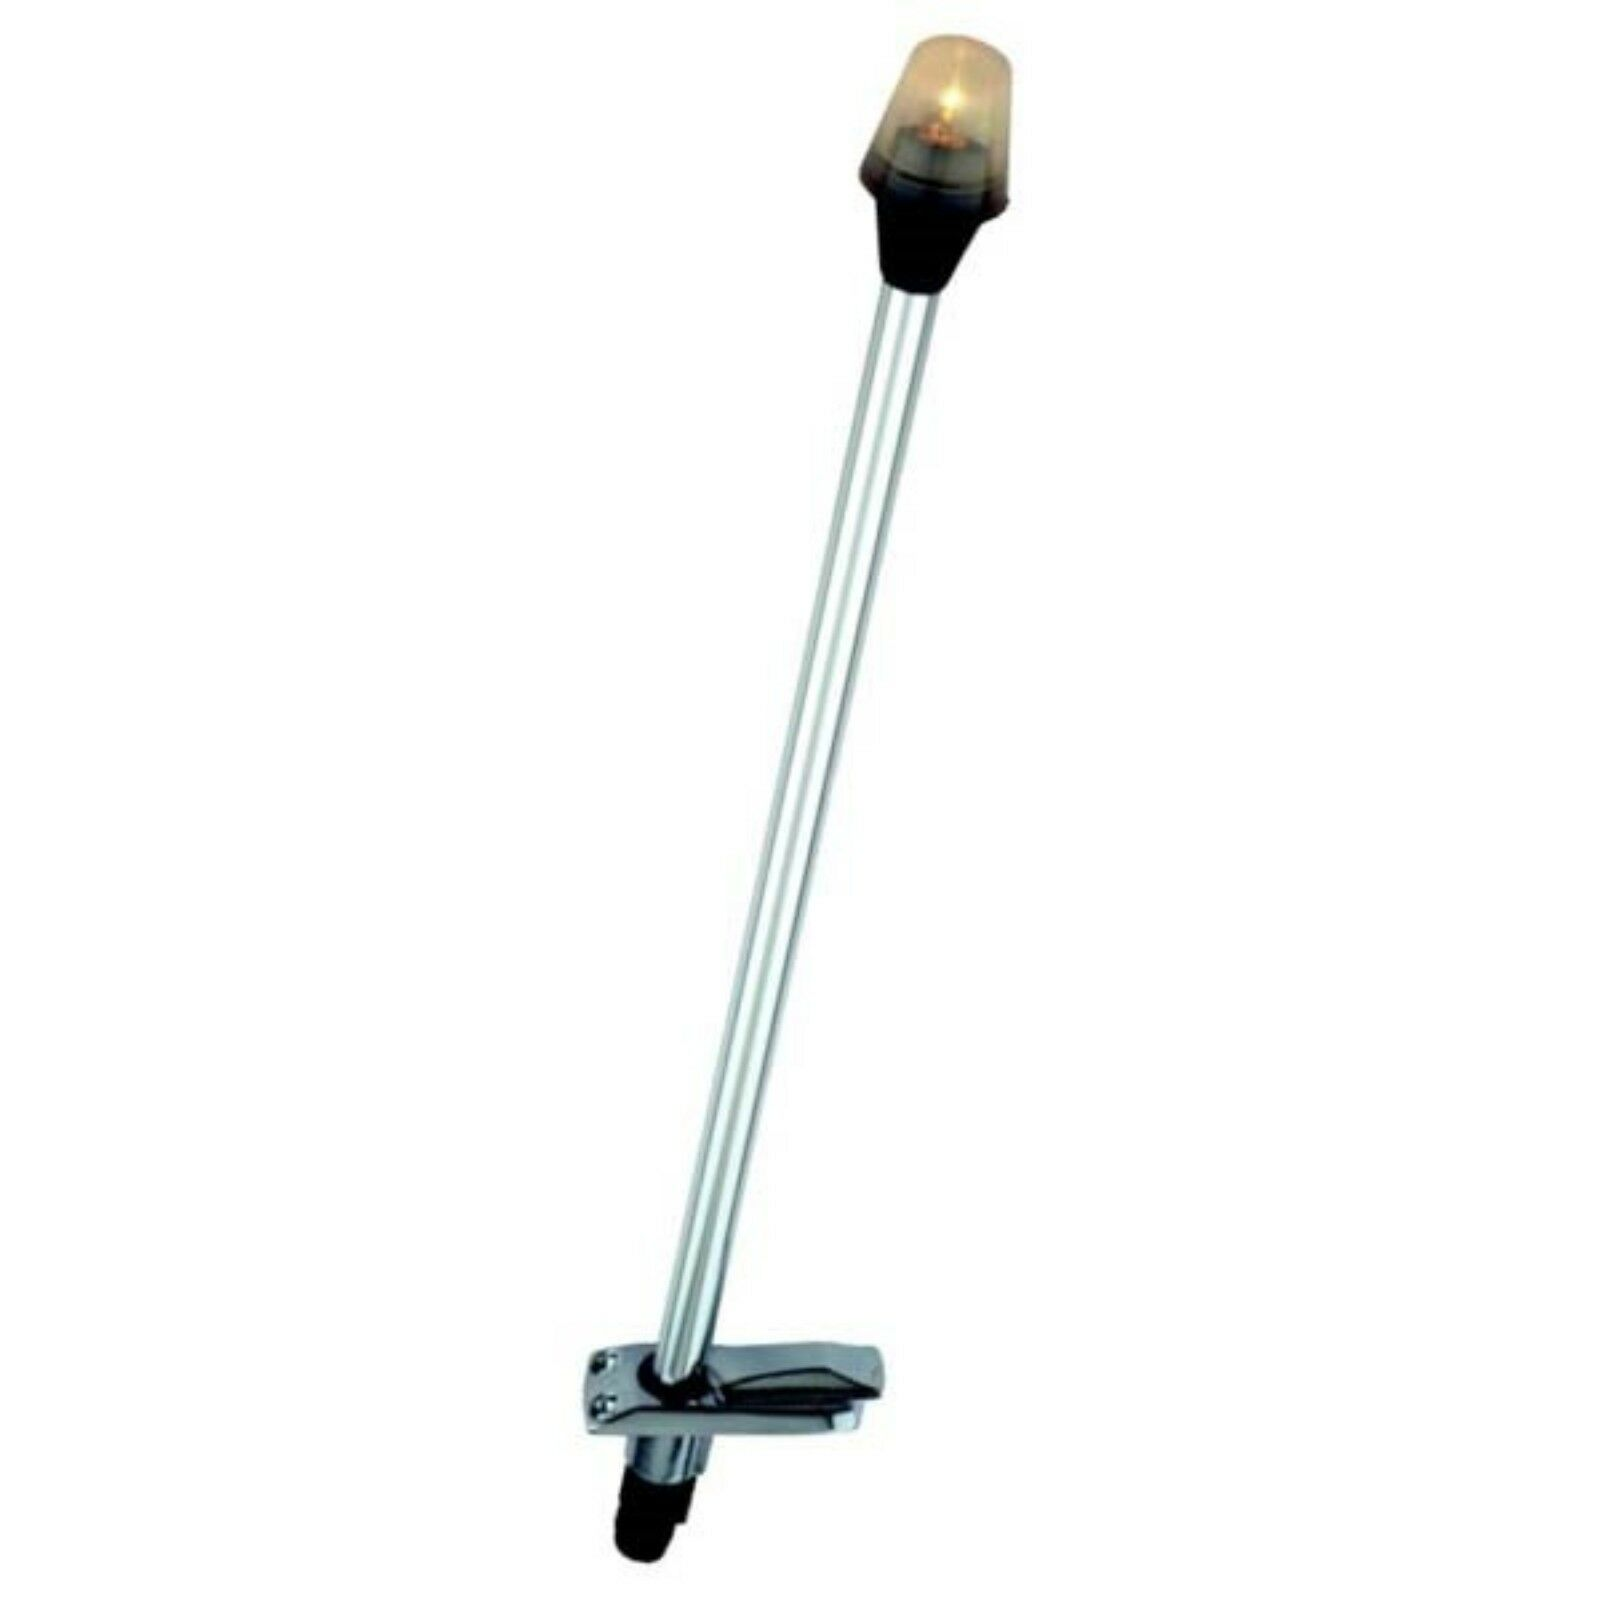 """New Stowaway Pole Light With Plug-in Base attwood Marine 7100b7 Length 30/"""""""